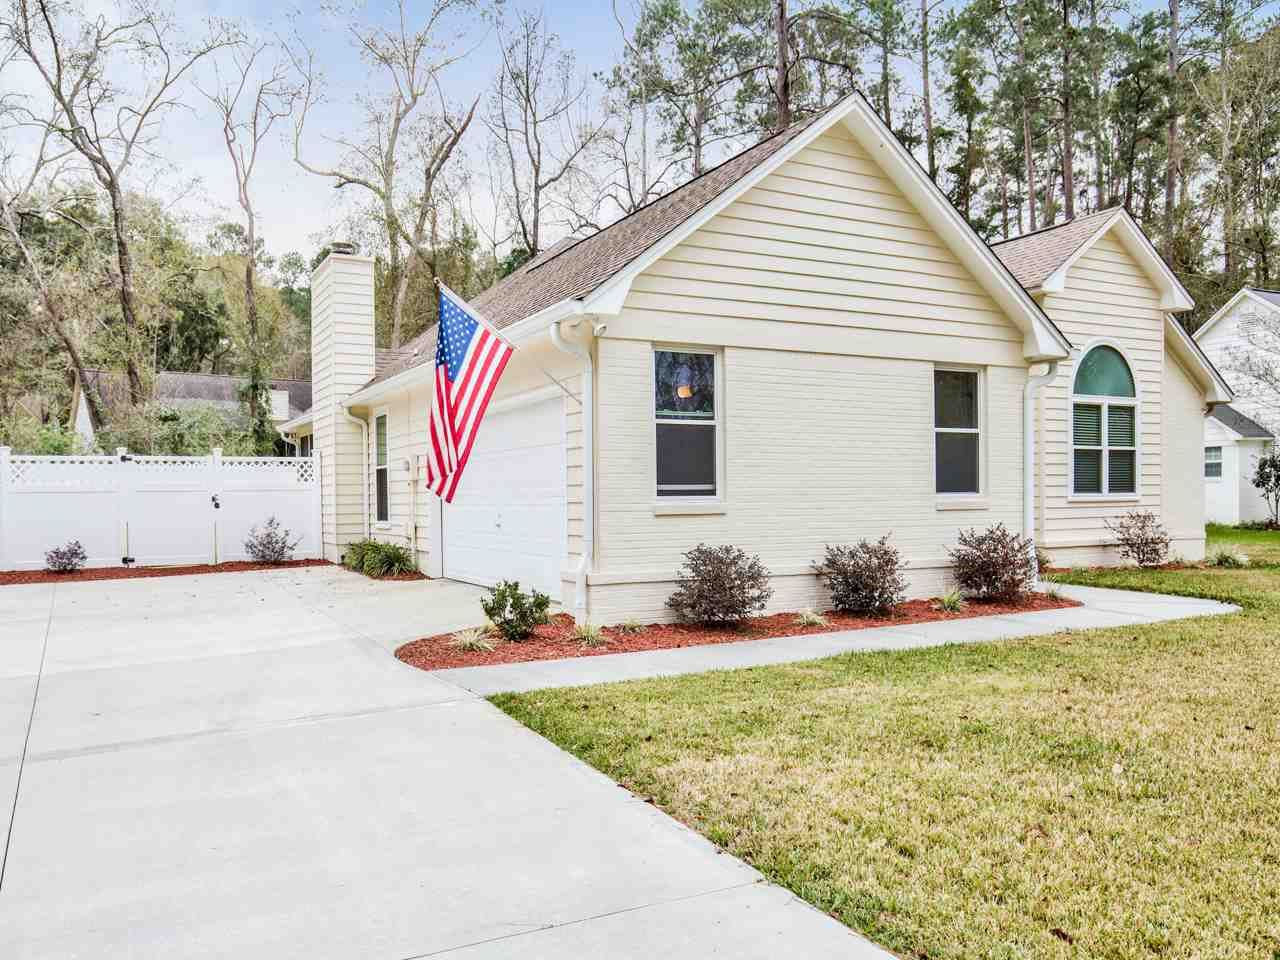 Photo of 1612 Copperfield Circle, TALLAHASSEE, FL 32312 (MLS # 315723)